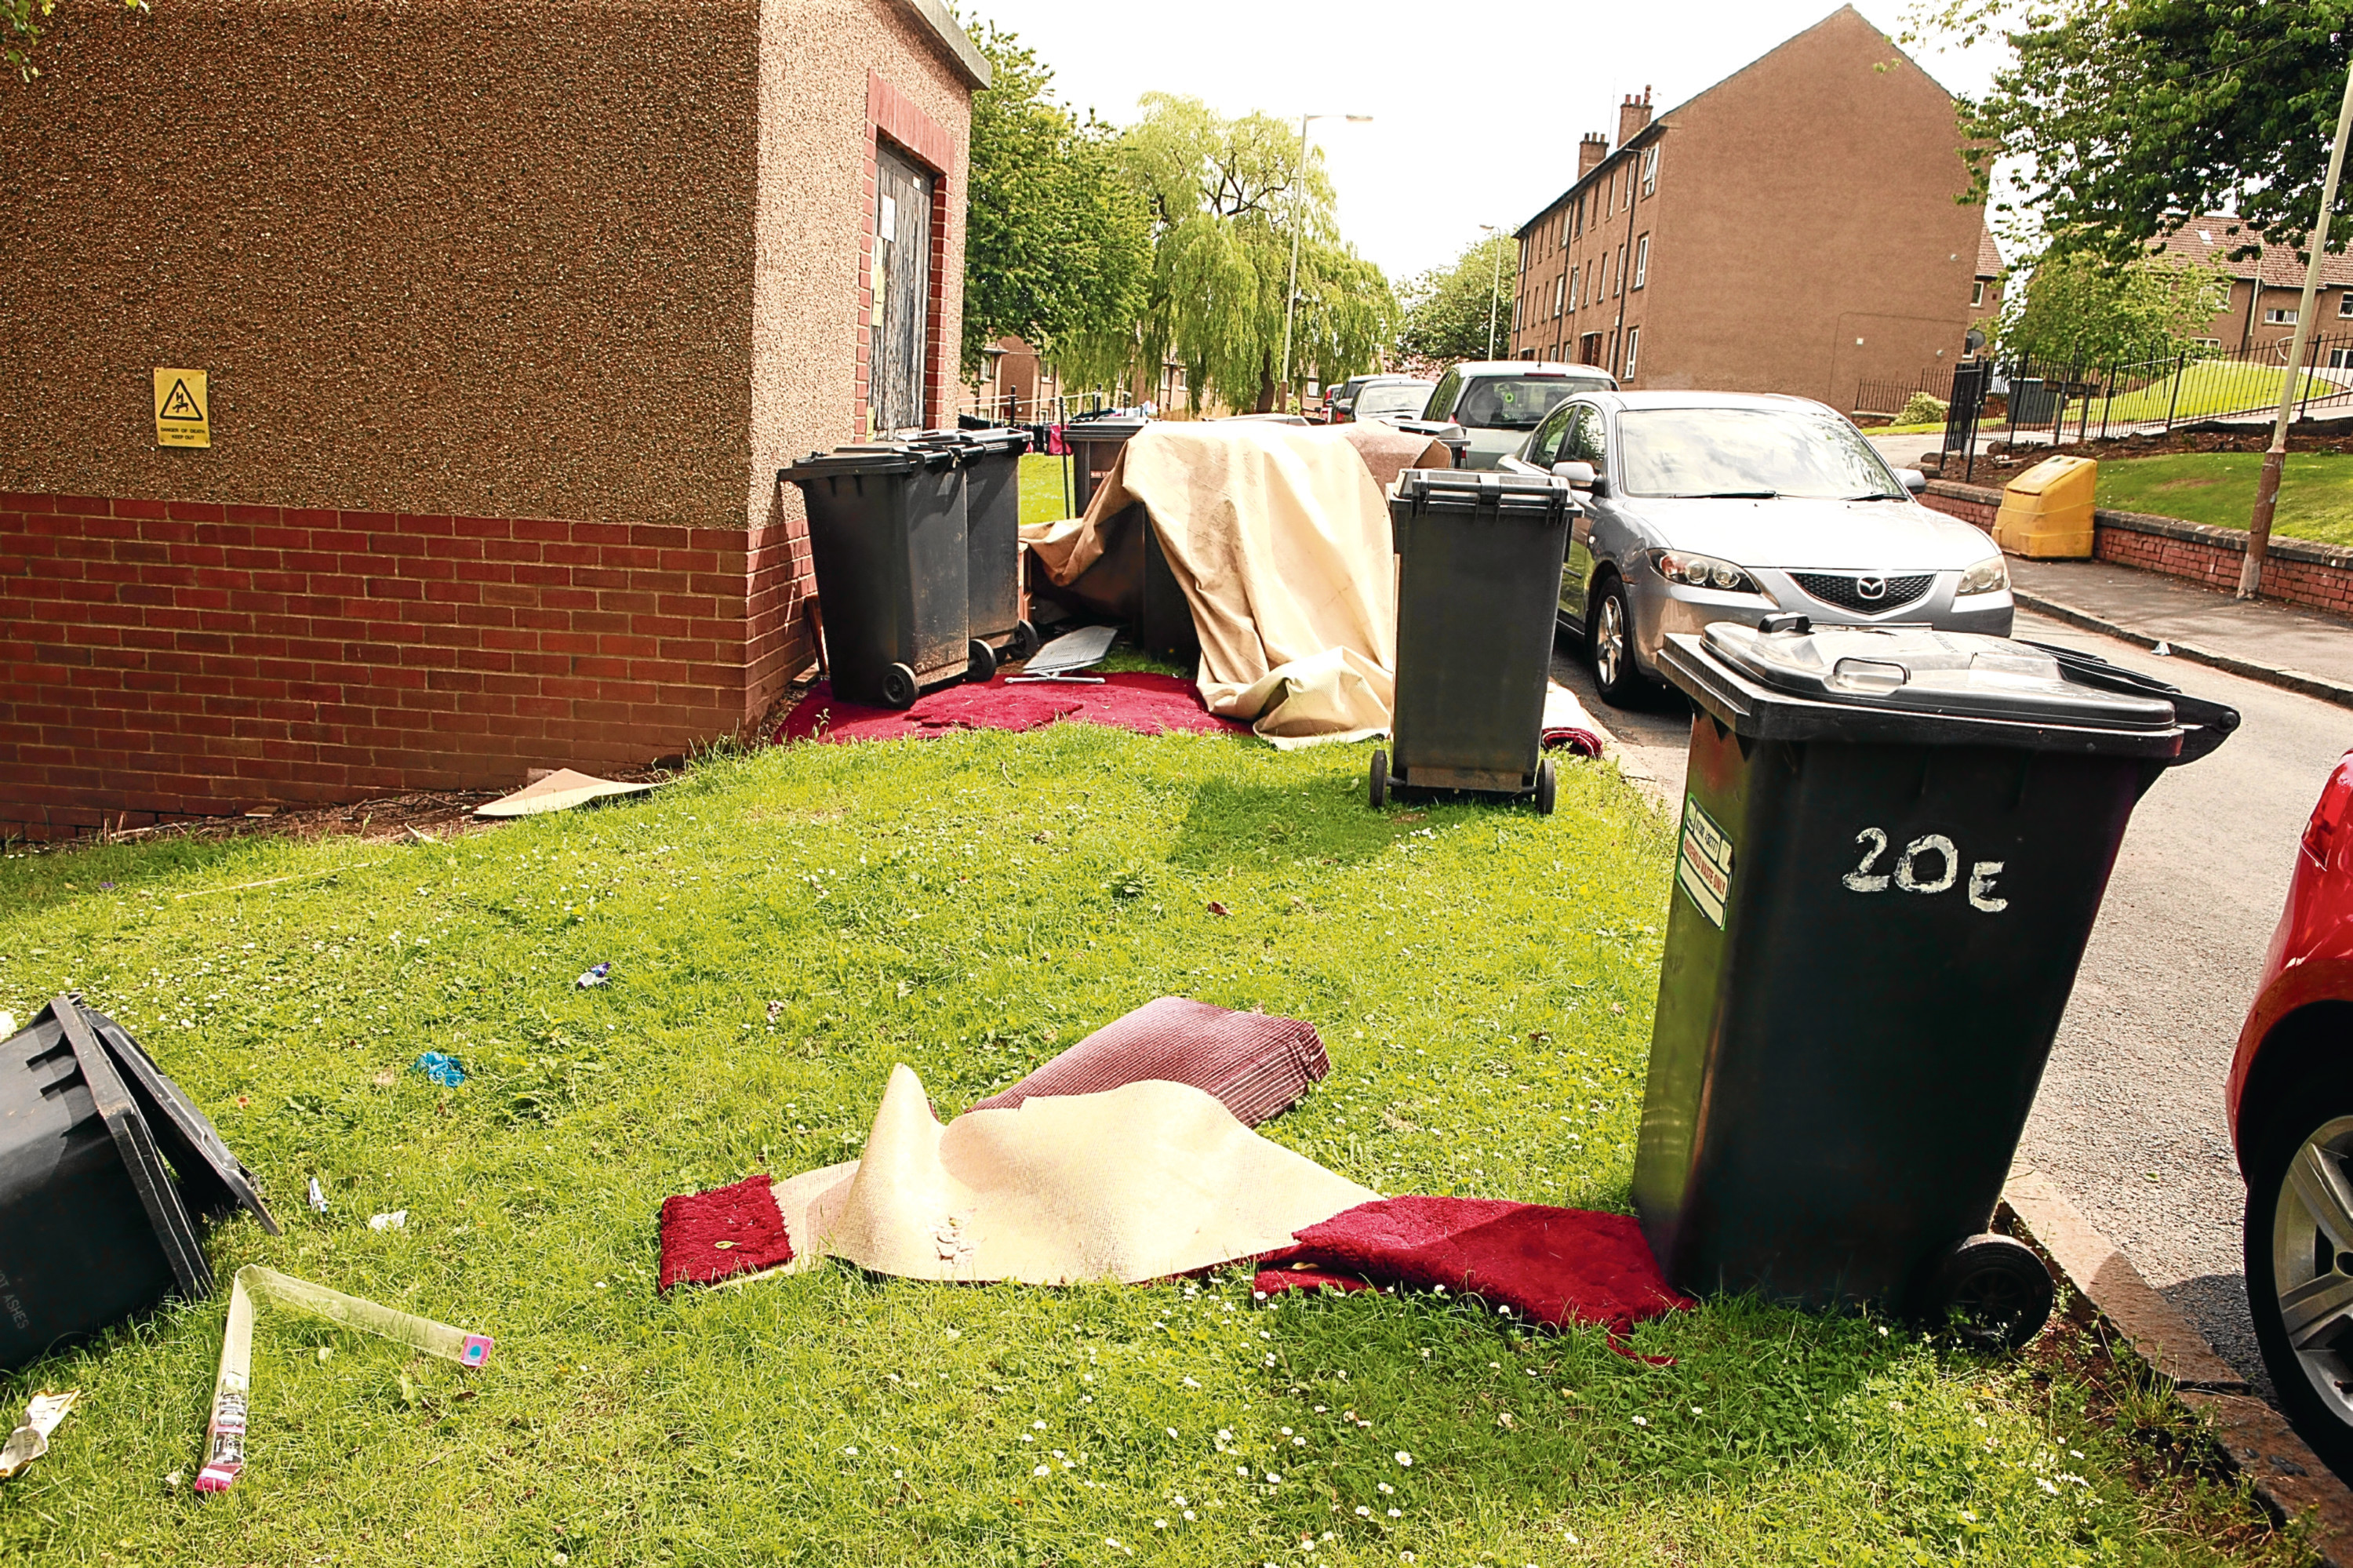 Fly-tipping is a blight on many areas